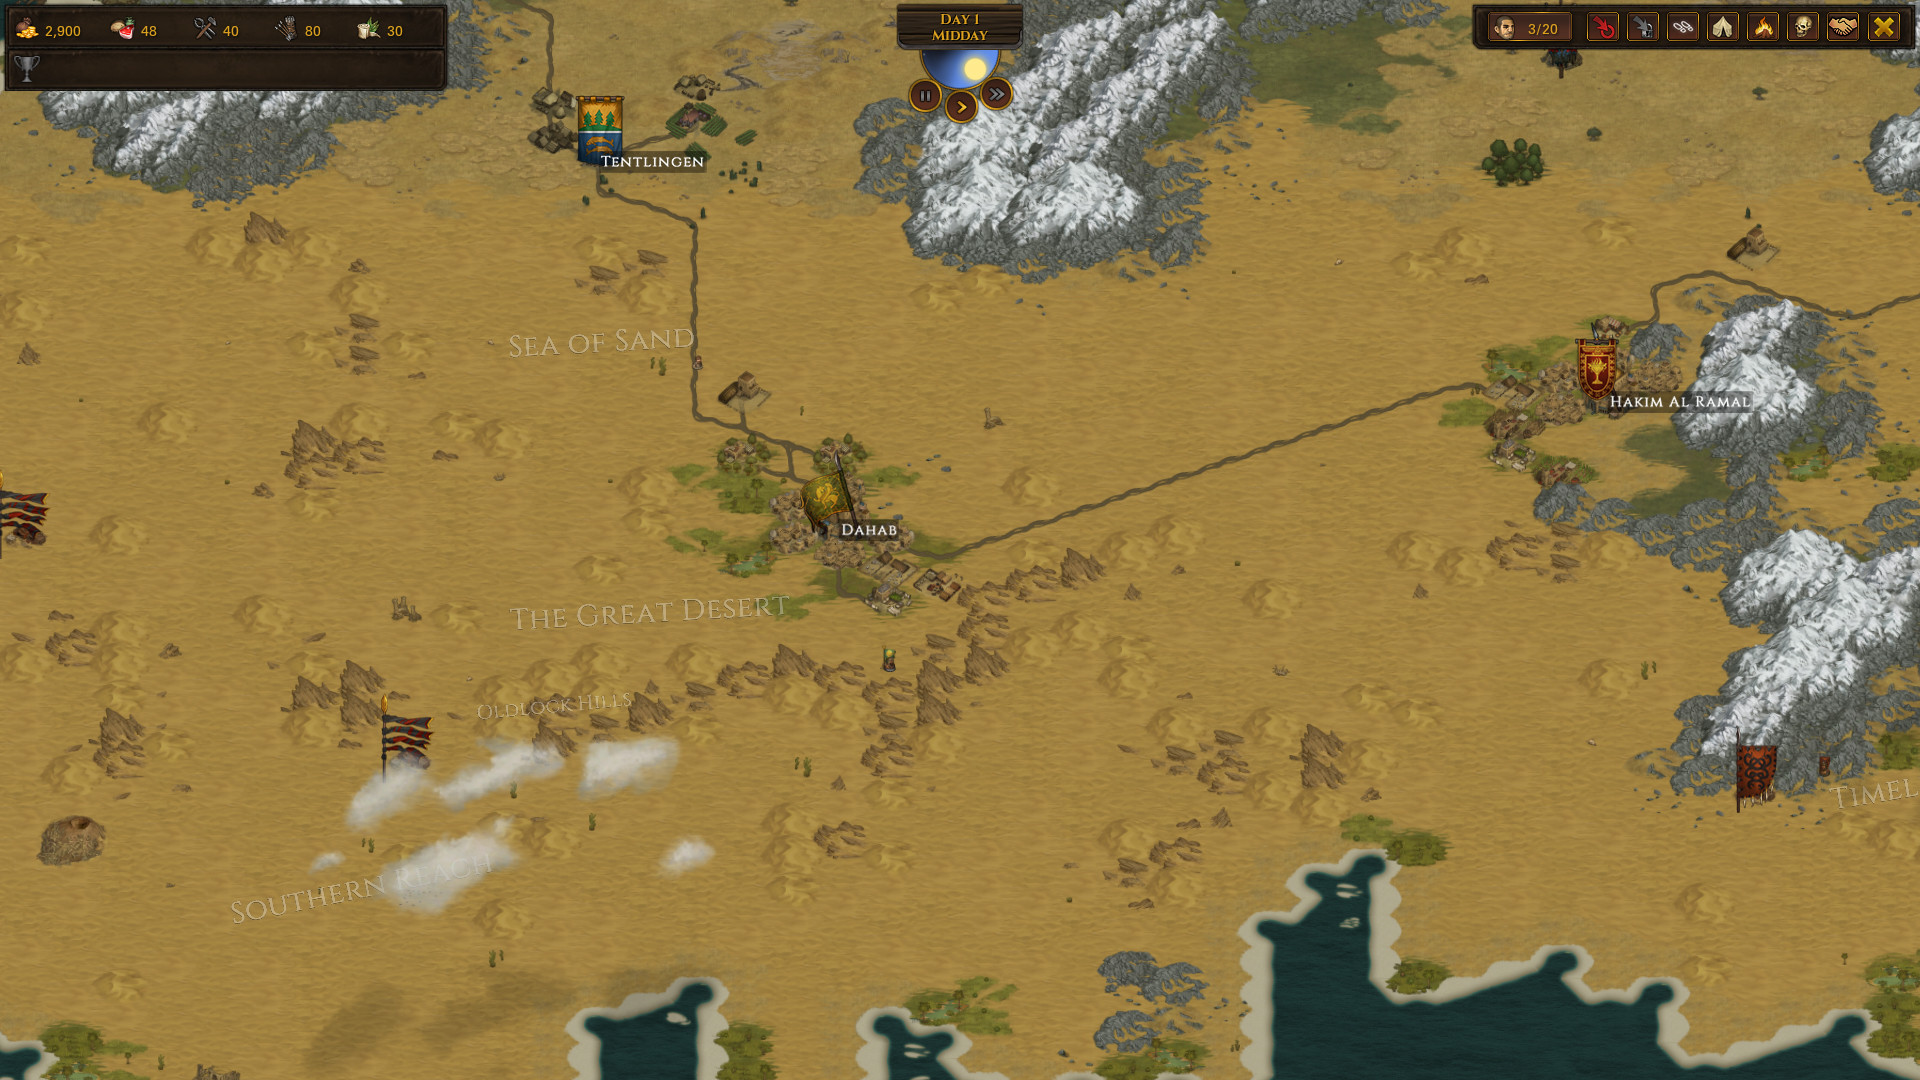 Battle Brothers - Blazing Deserts on Steam